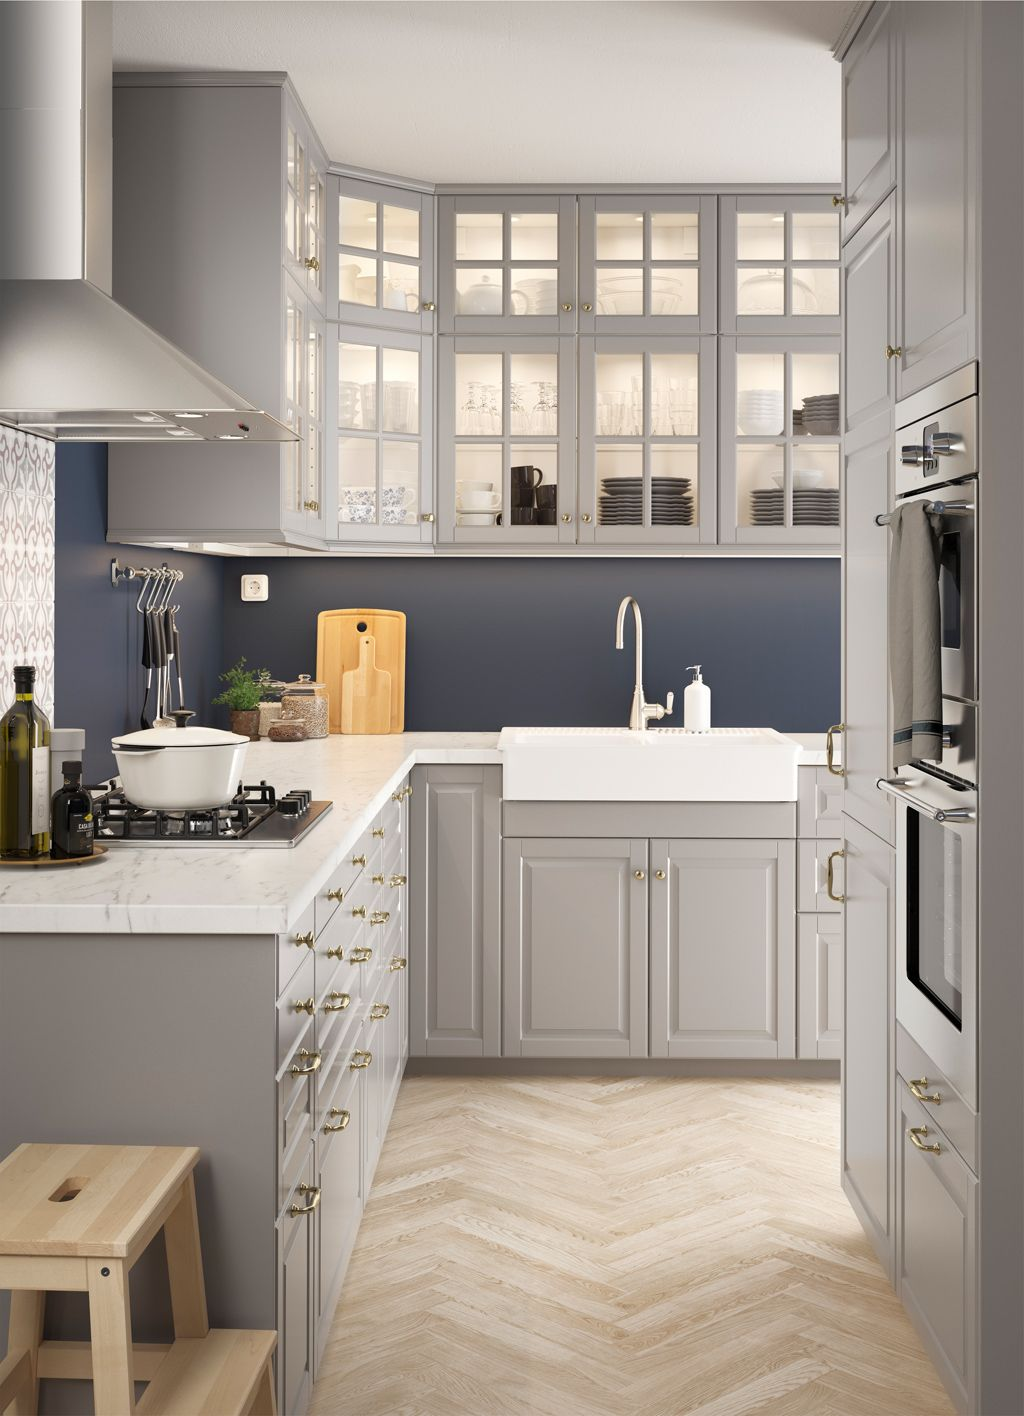 L Shaped Kitchen With Traditional Wall And Base Cabinets With Grey Doors And Glass Doors With Images Ikea Kitchen Design Kitchen Designs Layout Kitchen Layout